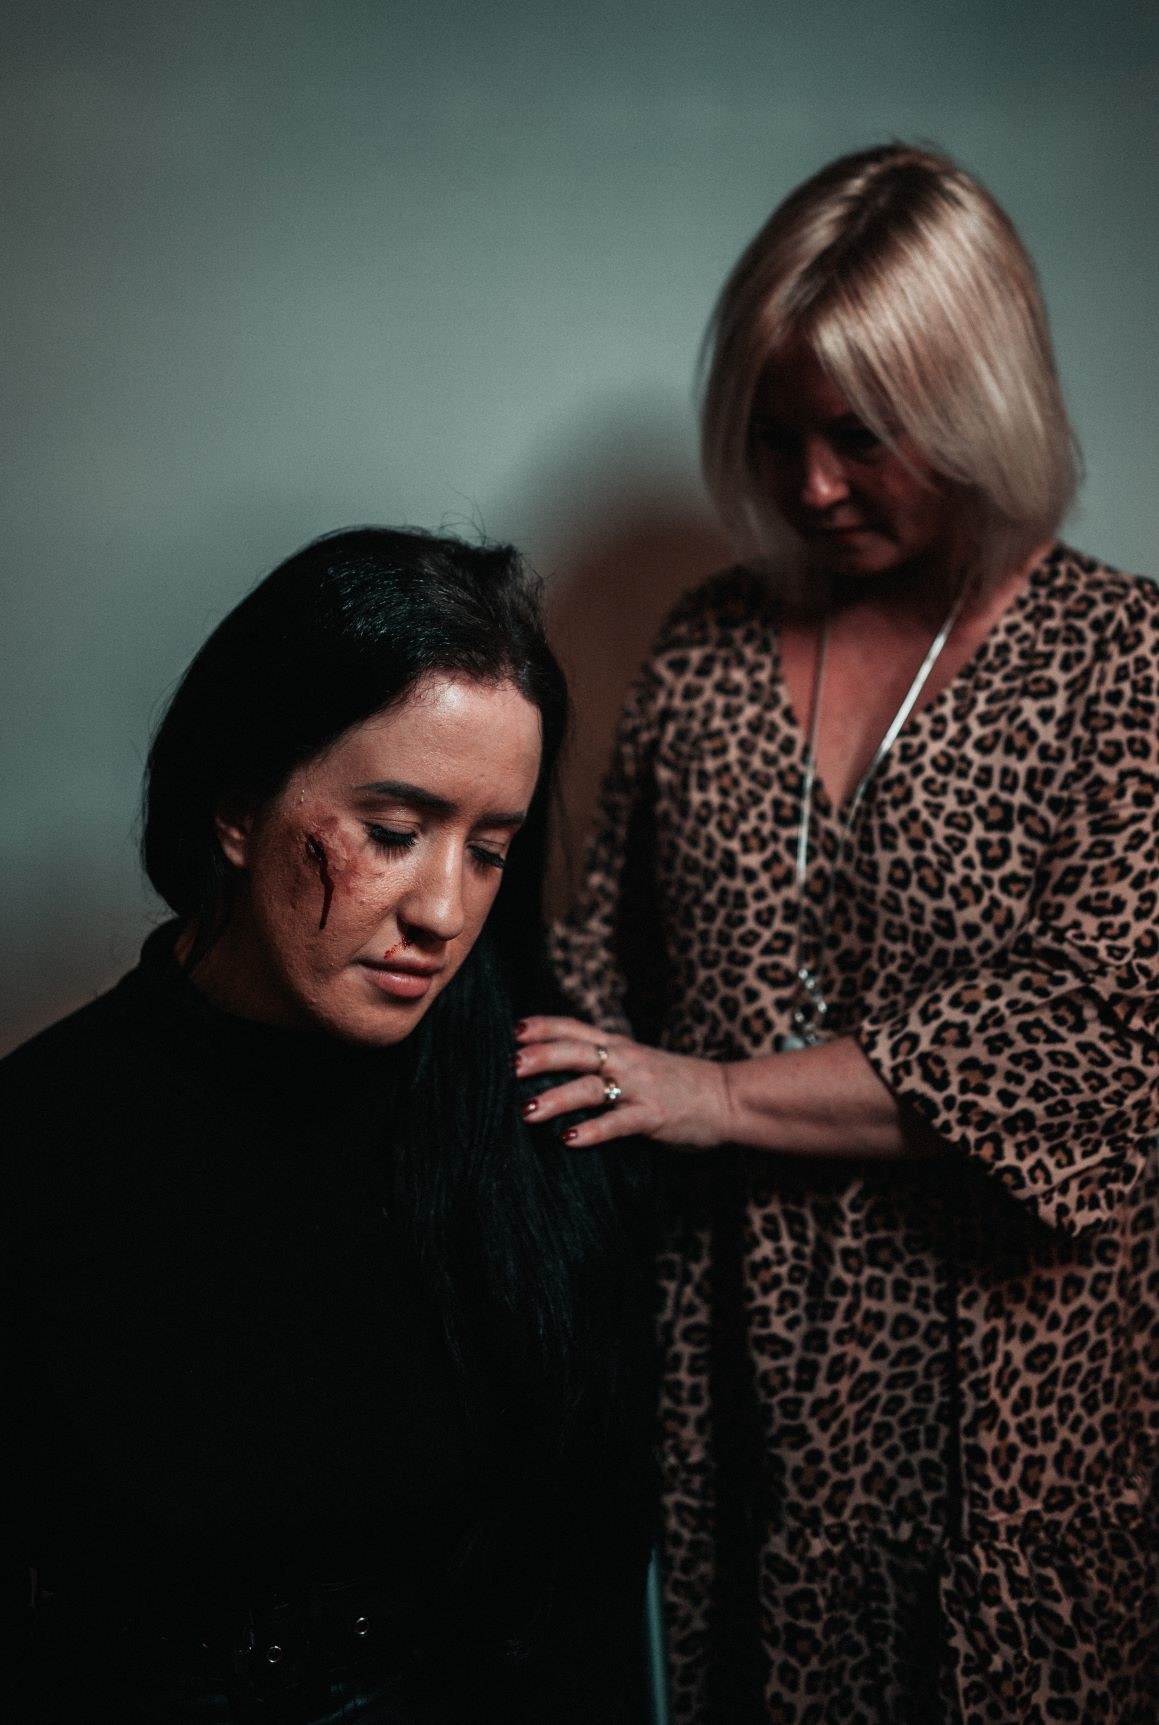 Impact of domestic abuse in the workplace